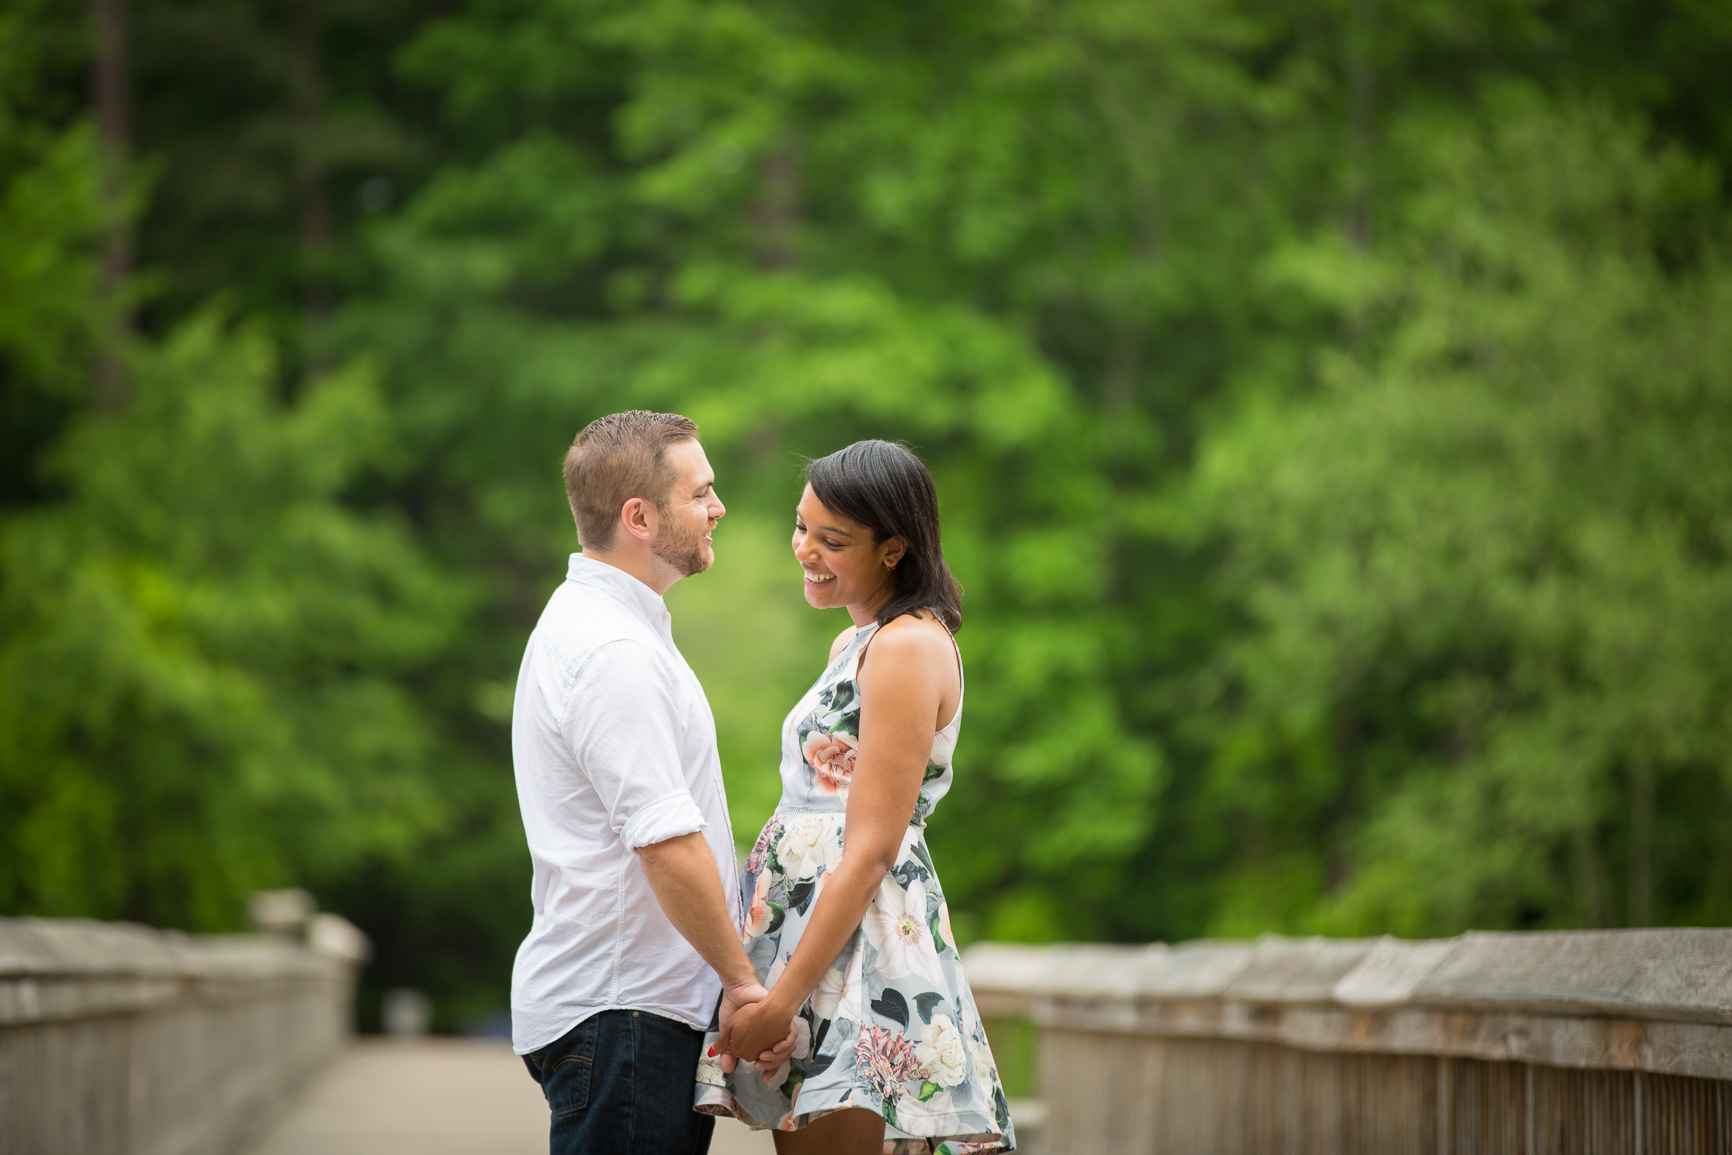 Yates Mill Raleigh Park engagement portrait photography session